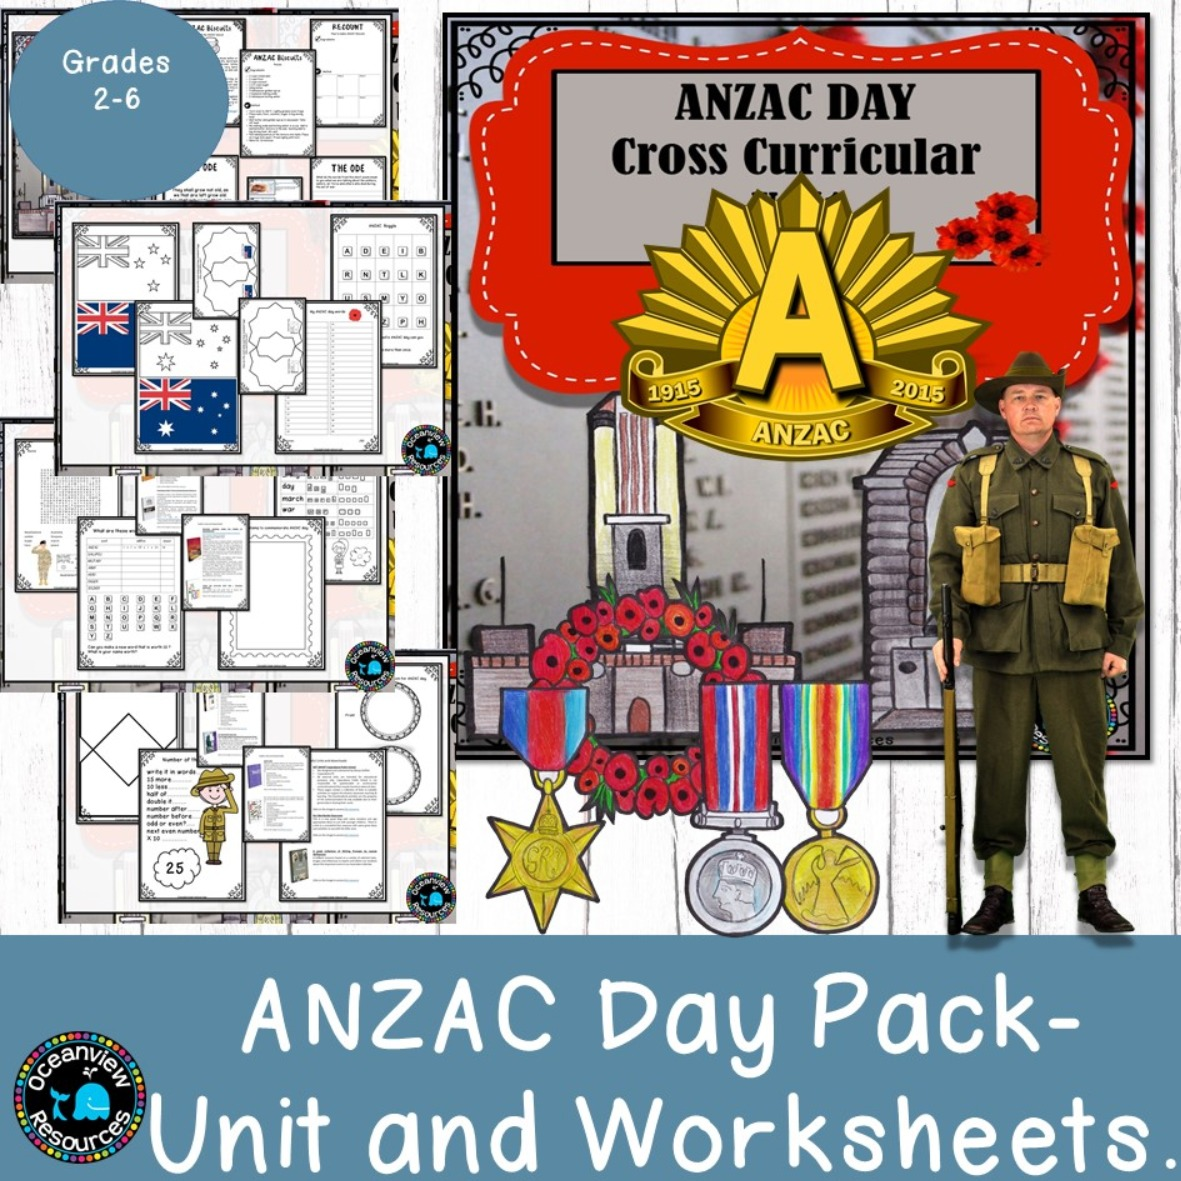 ANZAC day Cross Curricular unit K-6